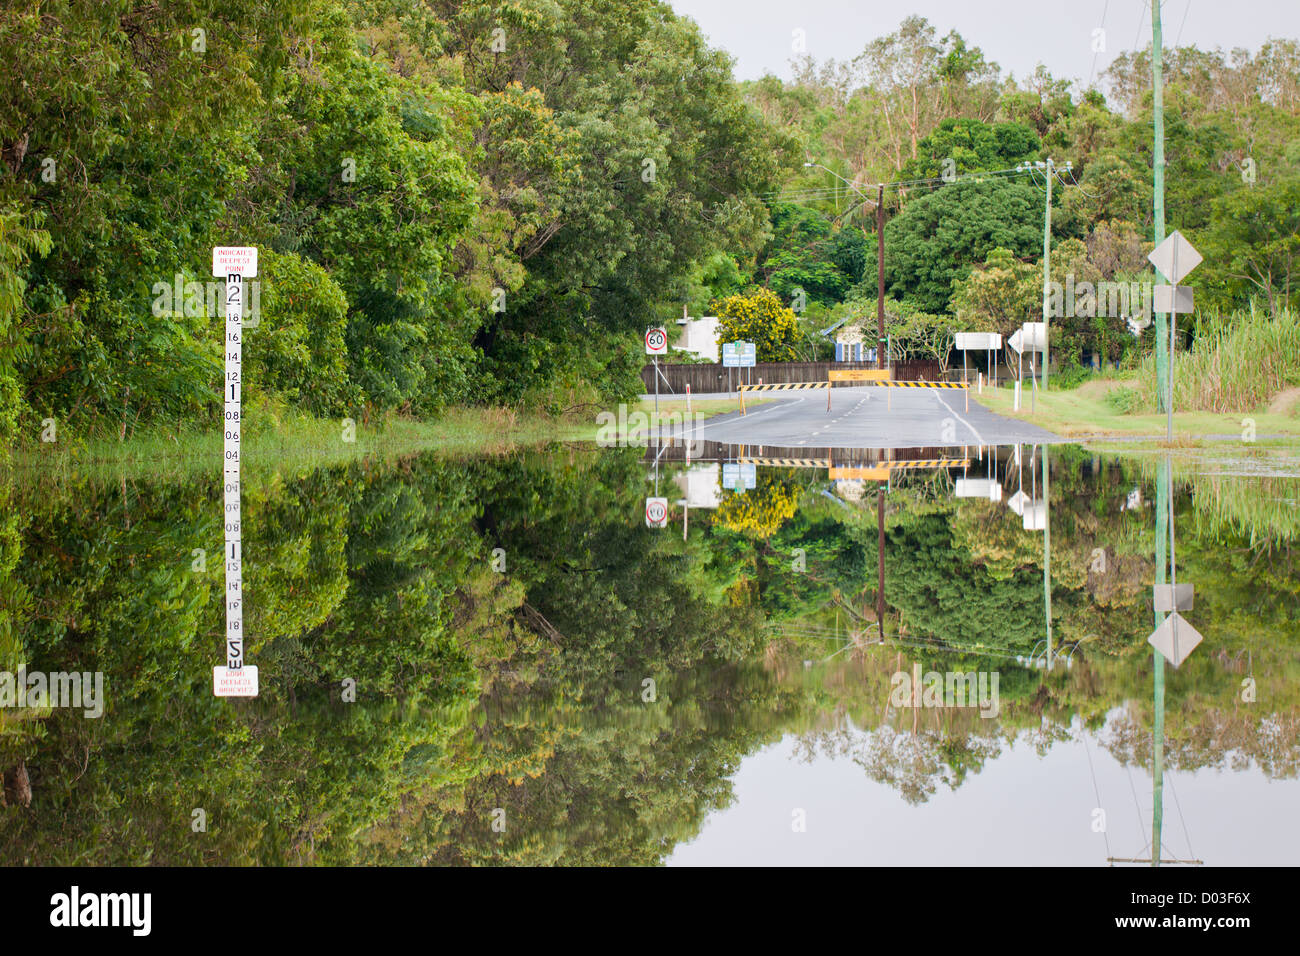 A flooded road with depth indicators and beautiful reflections - Stock Image